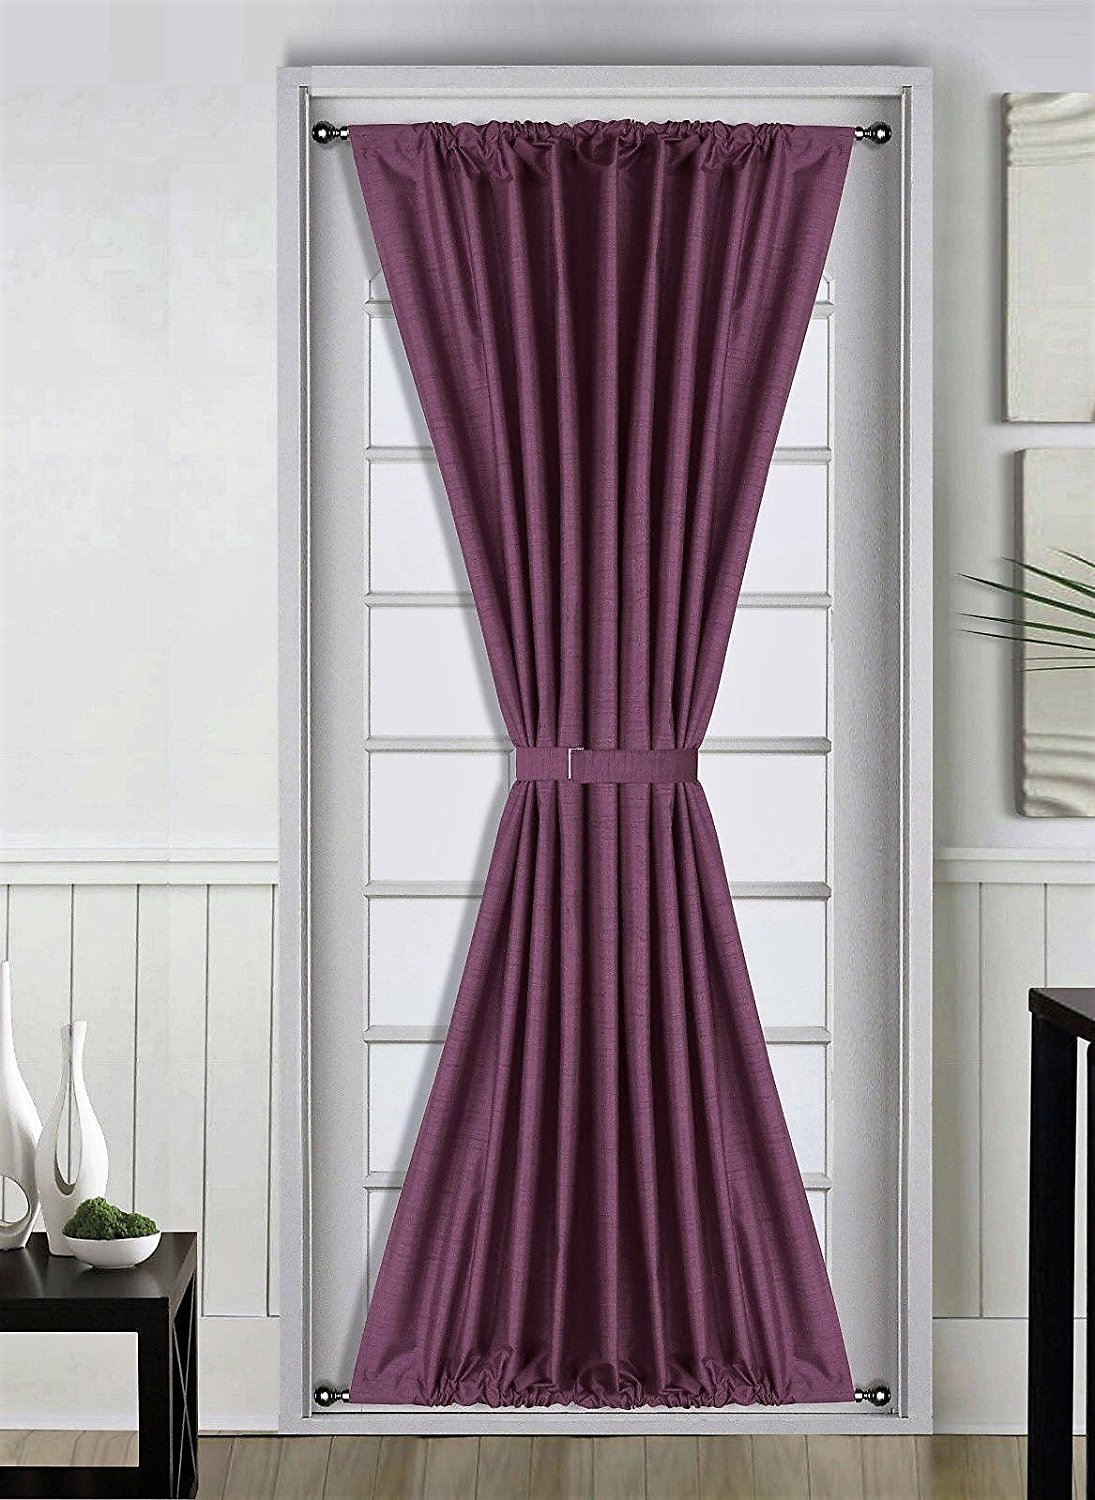 1 pc plum purple insulated heavy thick french door thermal blackout rod pocket curtain panel with tieback 55 w x 72 l daysi walmart com